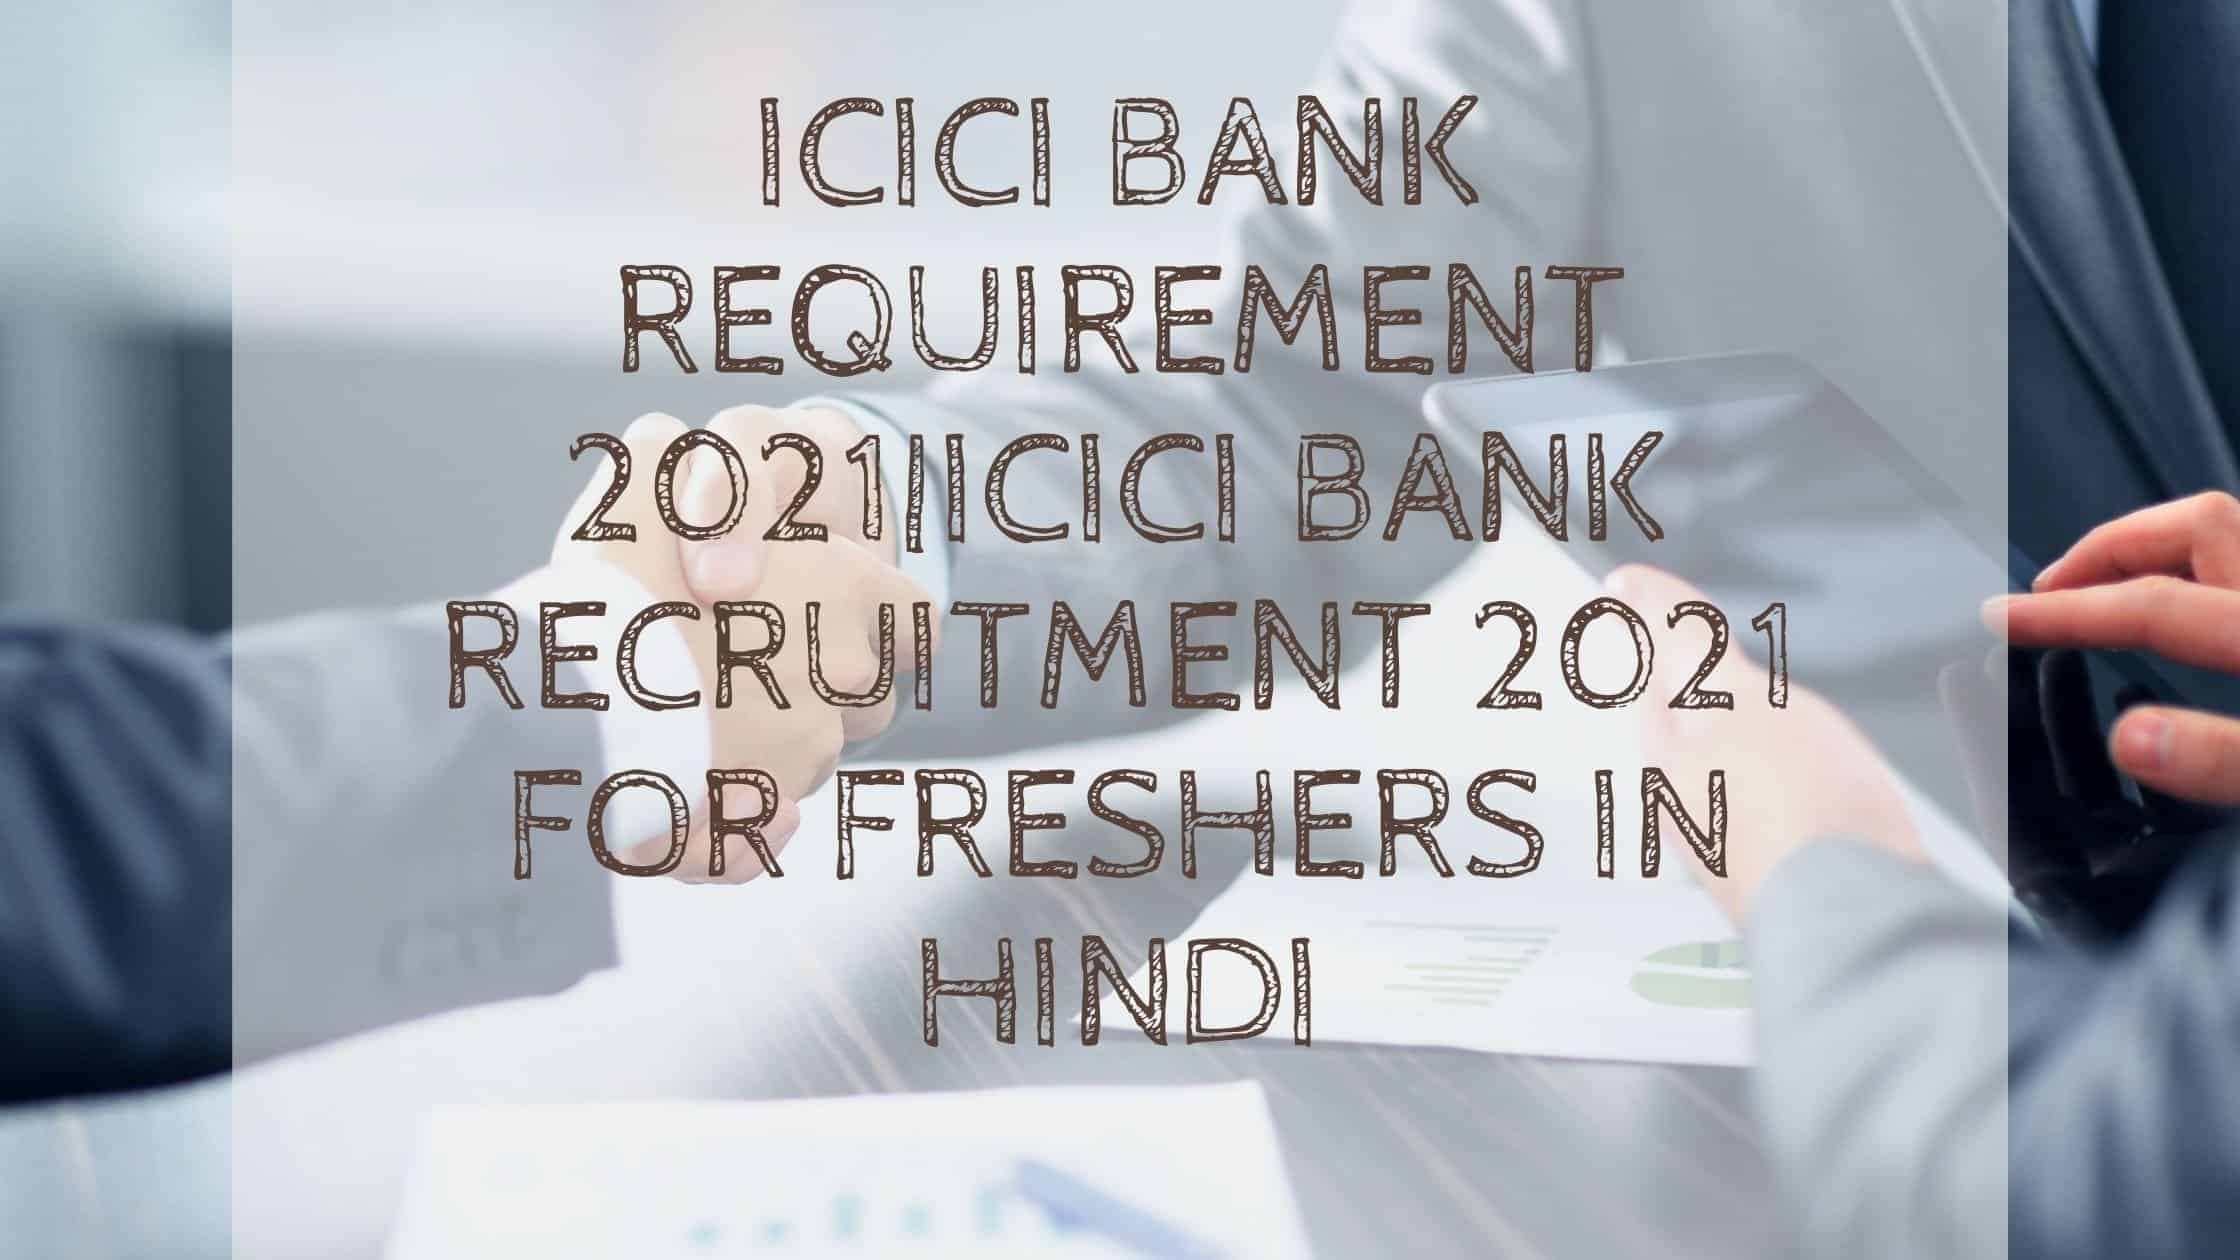 ICICI Bank Requirement 2021|icici bank recruitment 2021 for freshers in Hindi